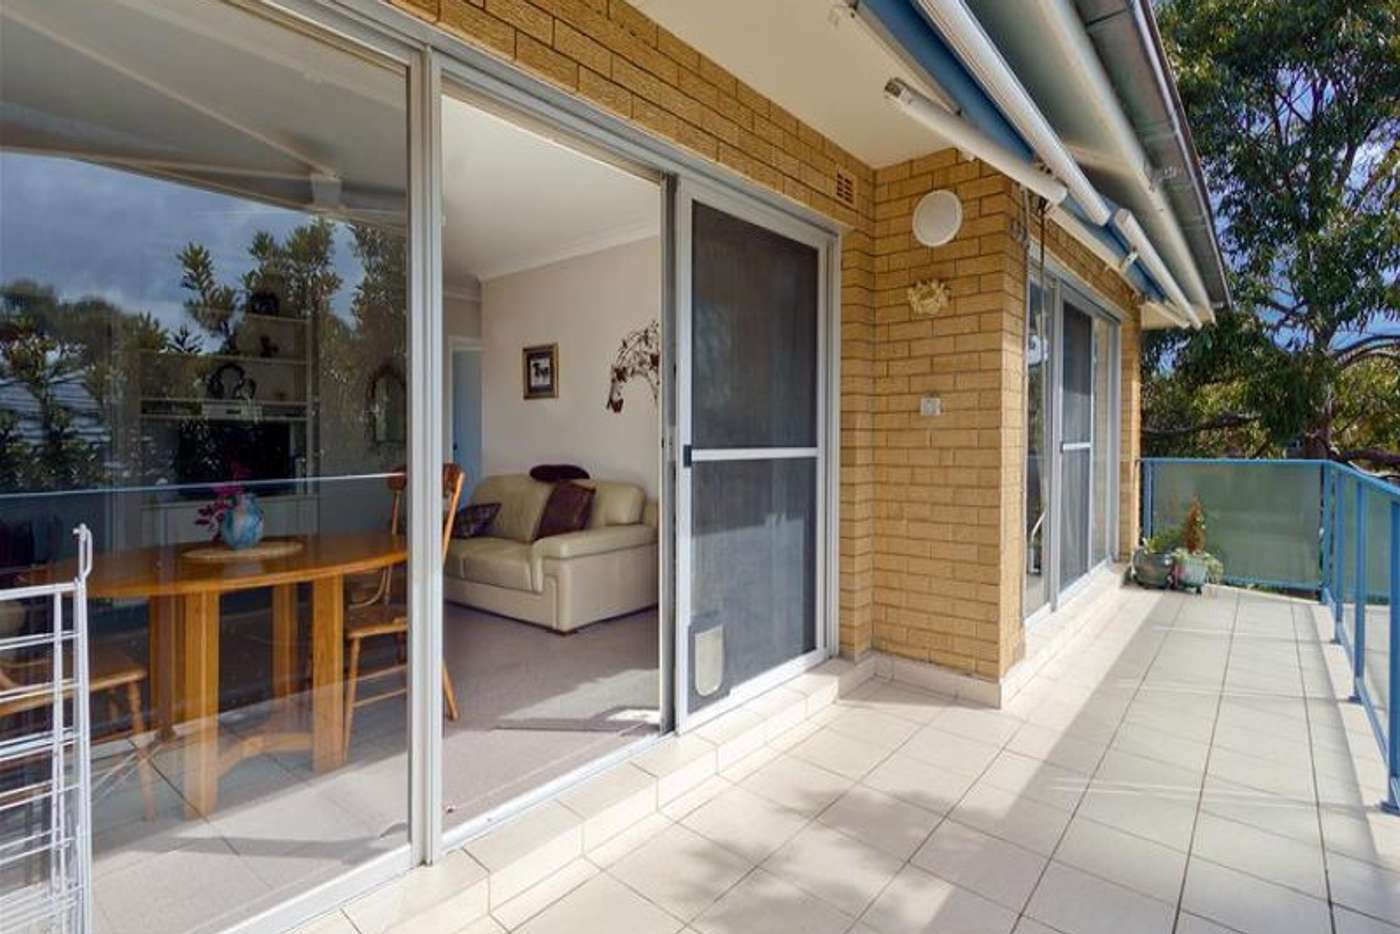 Main view of Homely apartment listing, 12/10 Avon Road, Dee Why NSW 2099